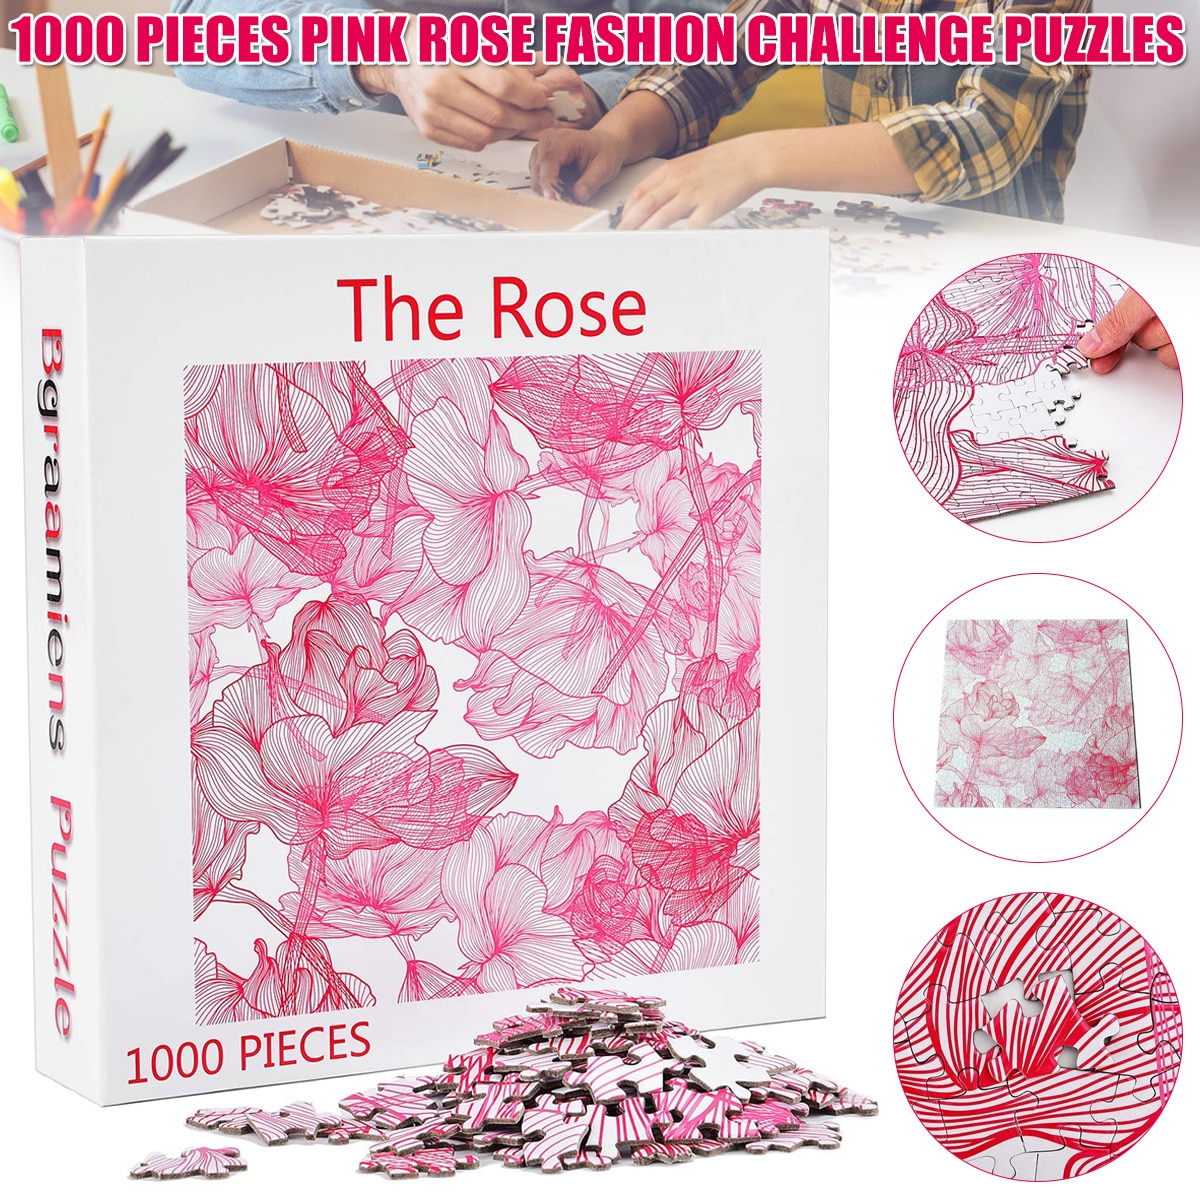 1000pcs Wooden Puzzle Rose Pattern Fashion Challenge Blue Board Jigsaw Puzzles Gift for Adult Kids NSV775